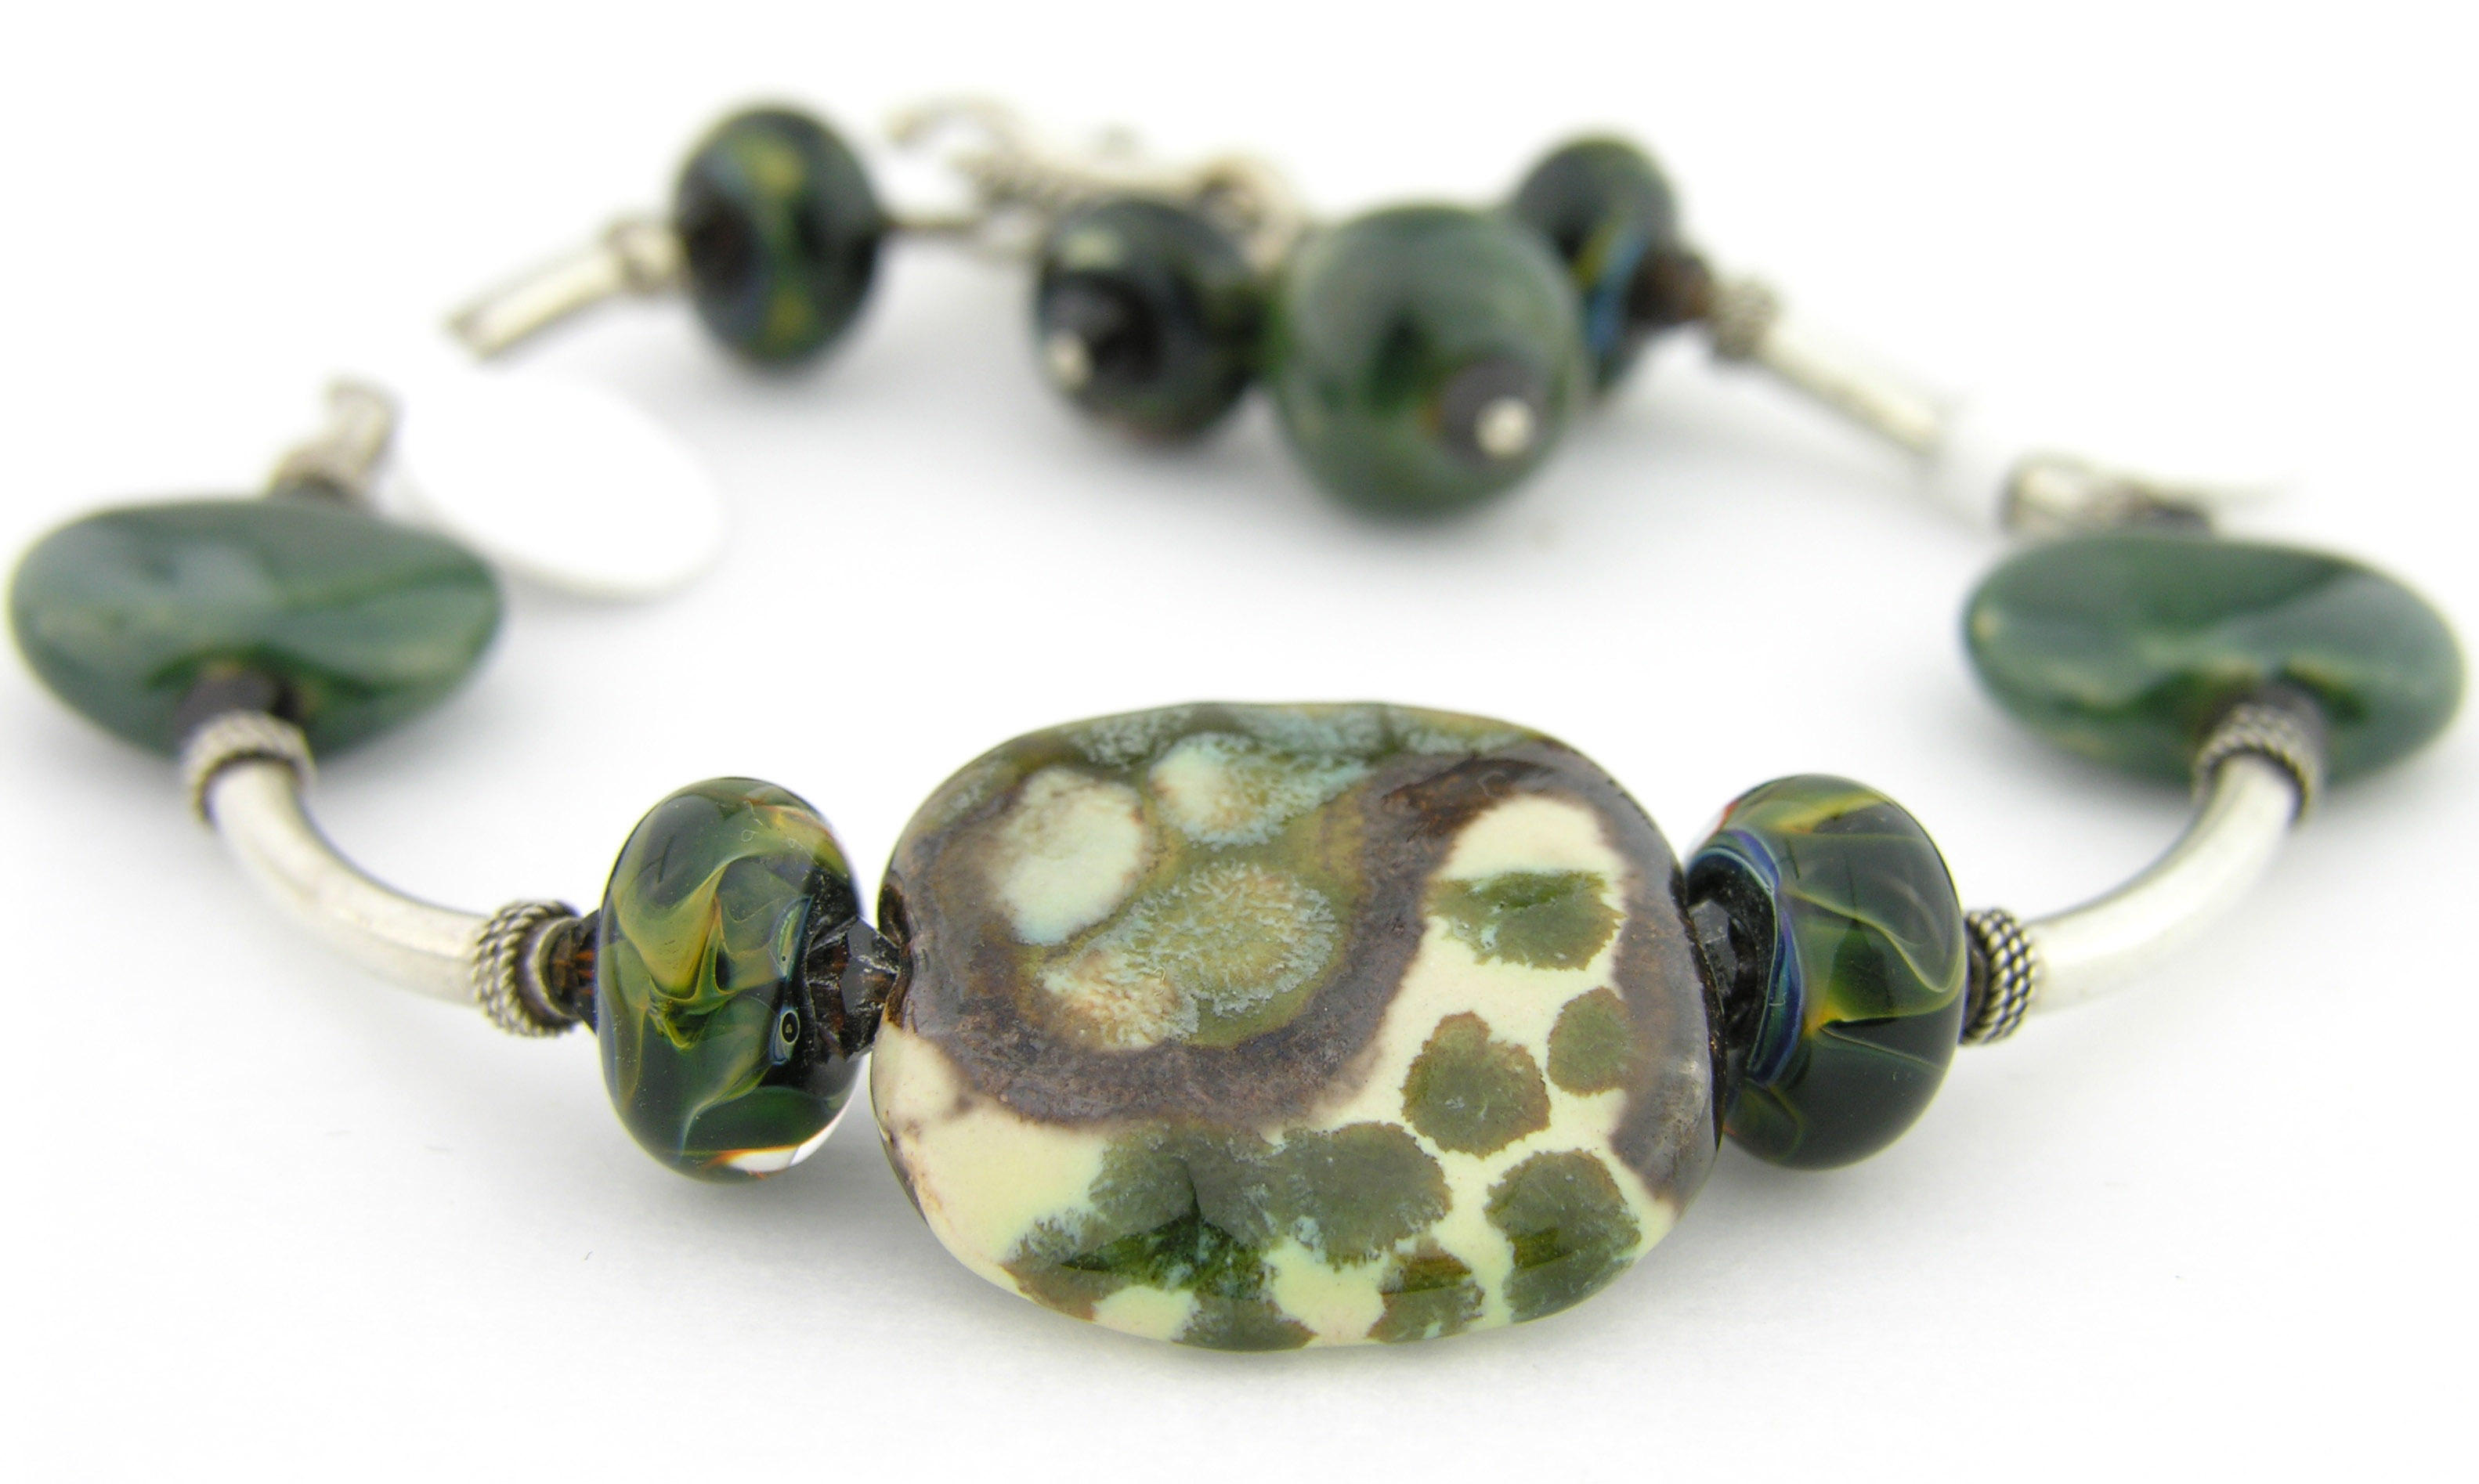 Deep In The Forest Bracelet - Handmade dark green and brown bracelet with artisan lampwork, ivory Kazuri ceramic beads, Swarovski crystals and sterling silver